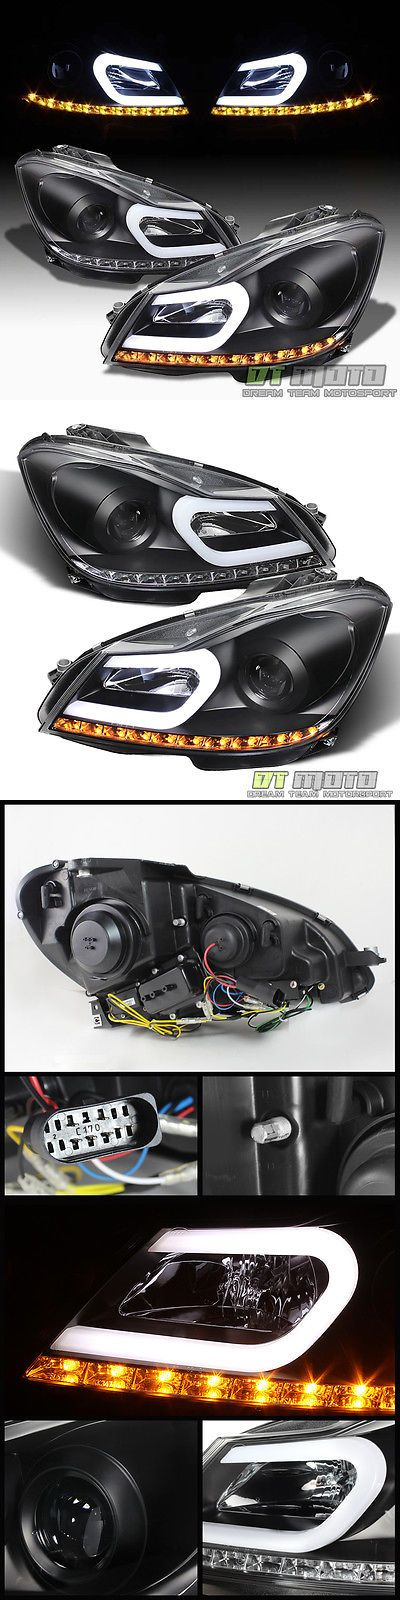 Motors Parts And Accessories: Black 2012-2014 Mercedes Benz W204 C-Class Led Signal Drl Projector Headlights -> BUY IT NOW ONLY: $363.99 on eBay!